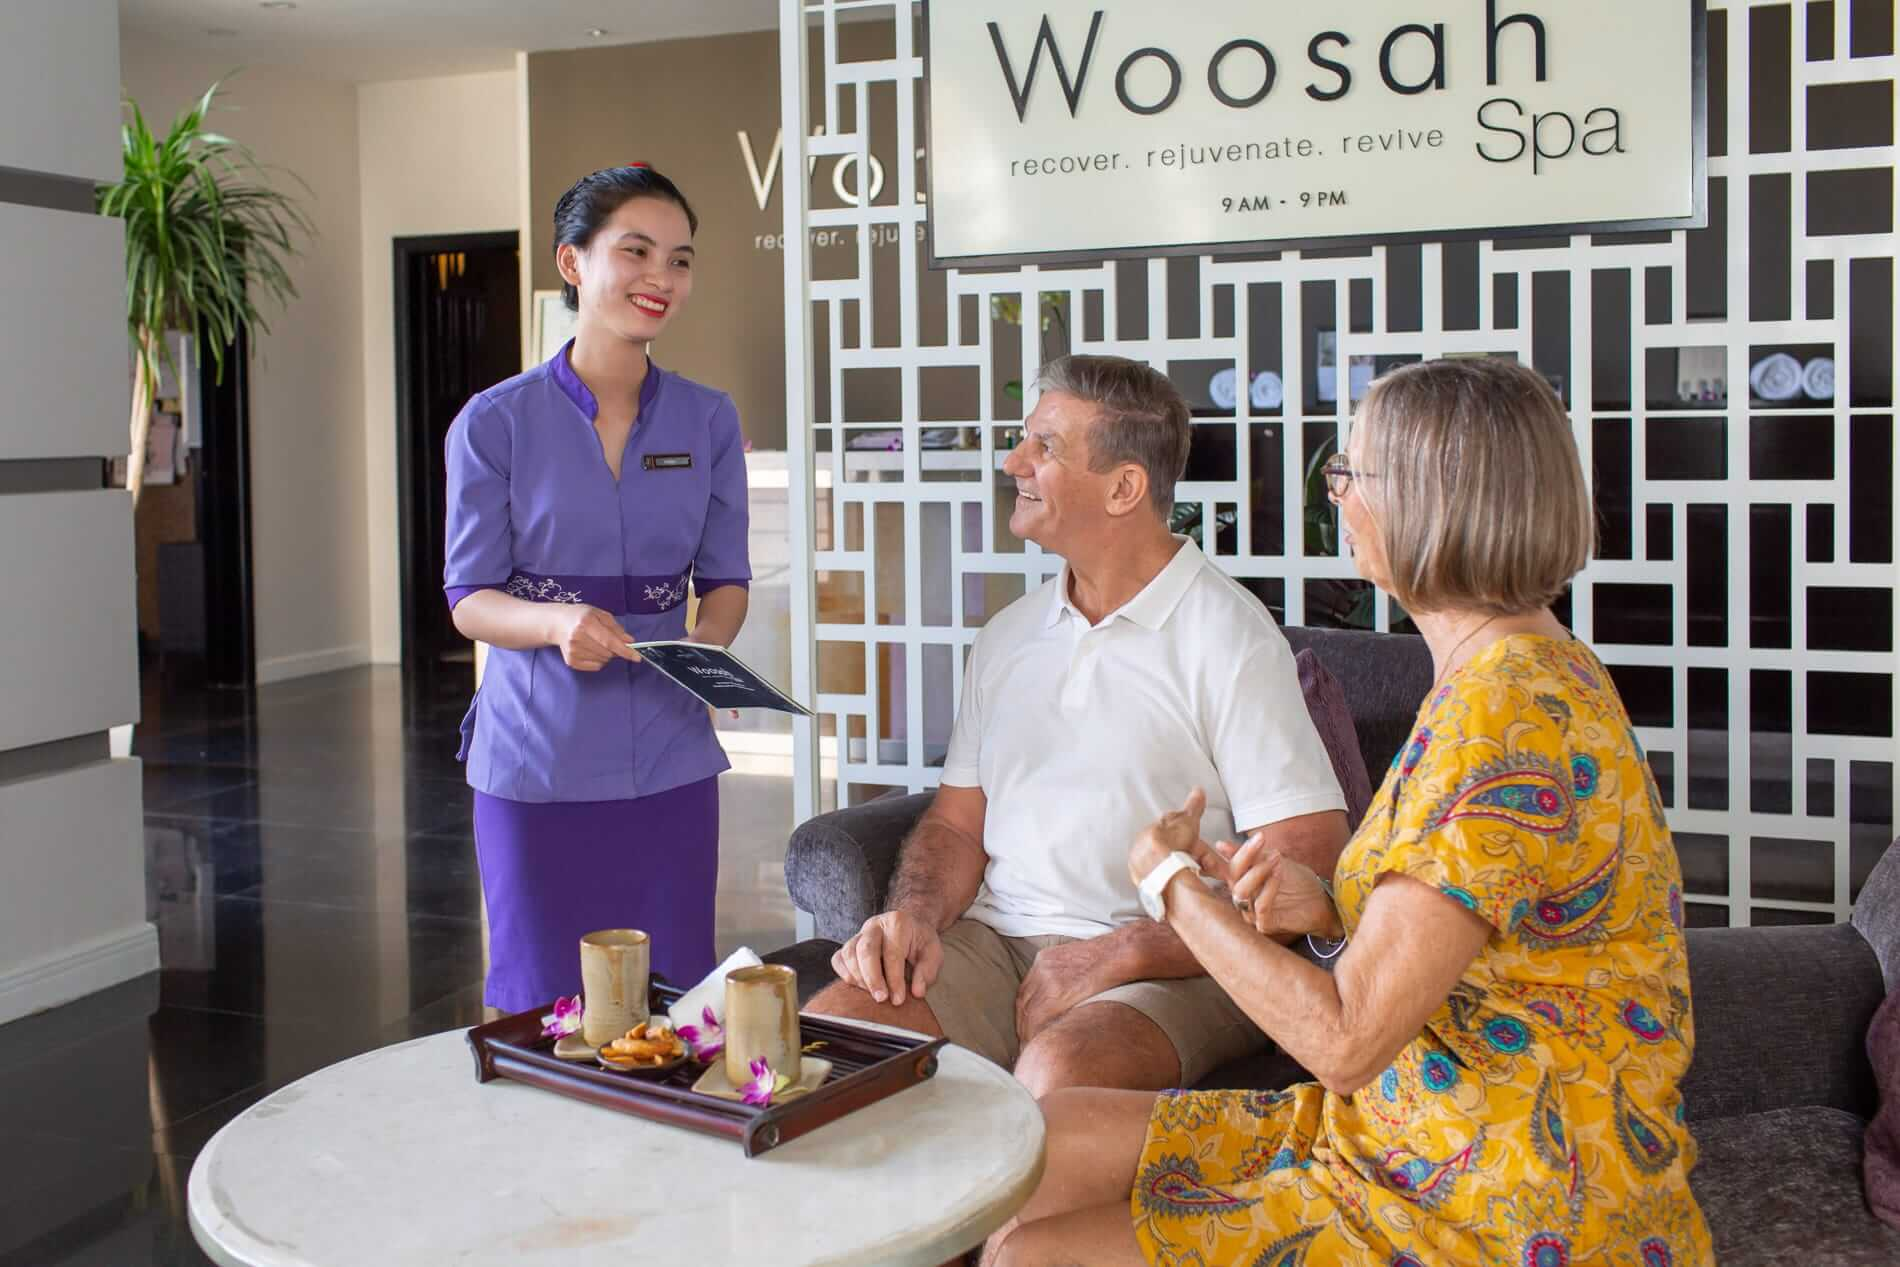 customers are happily greeted by a Woosah Staff in Hoi An